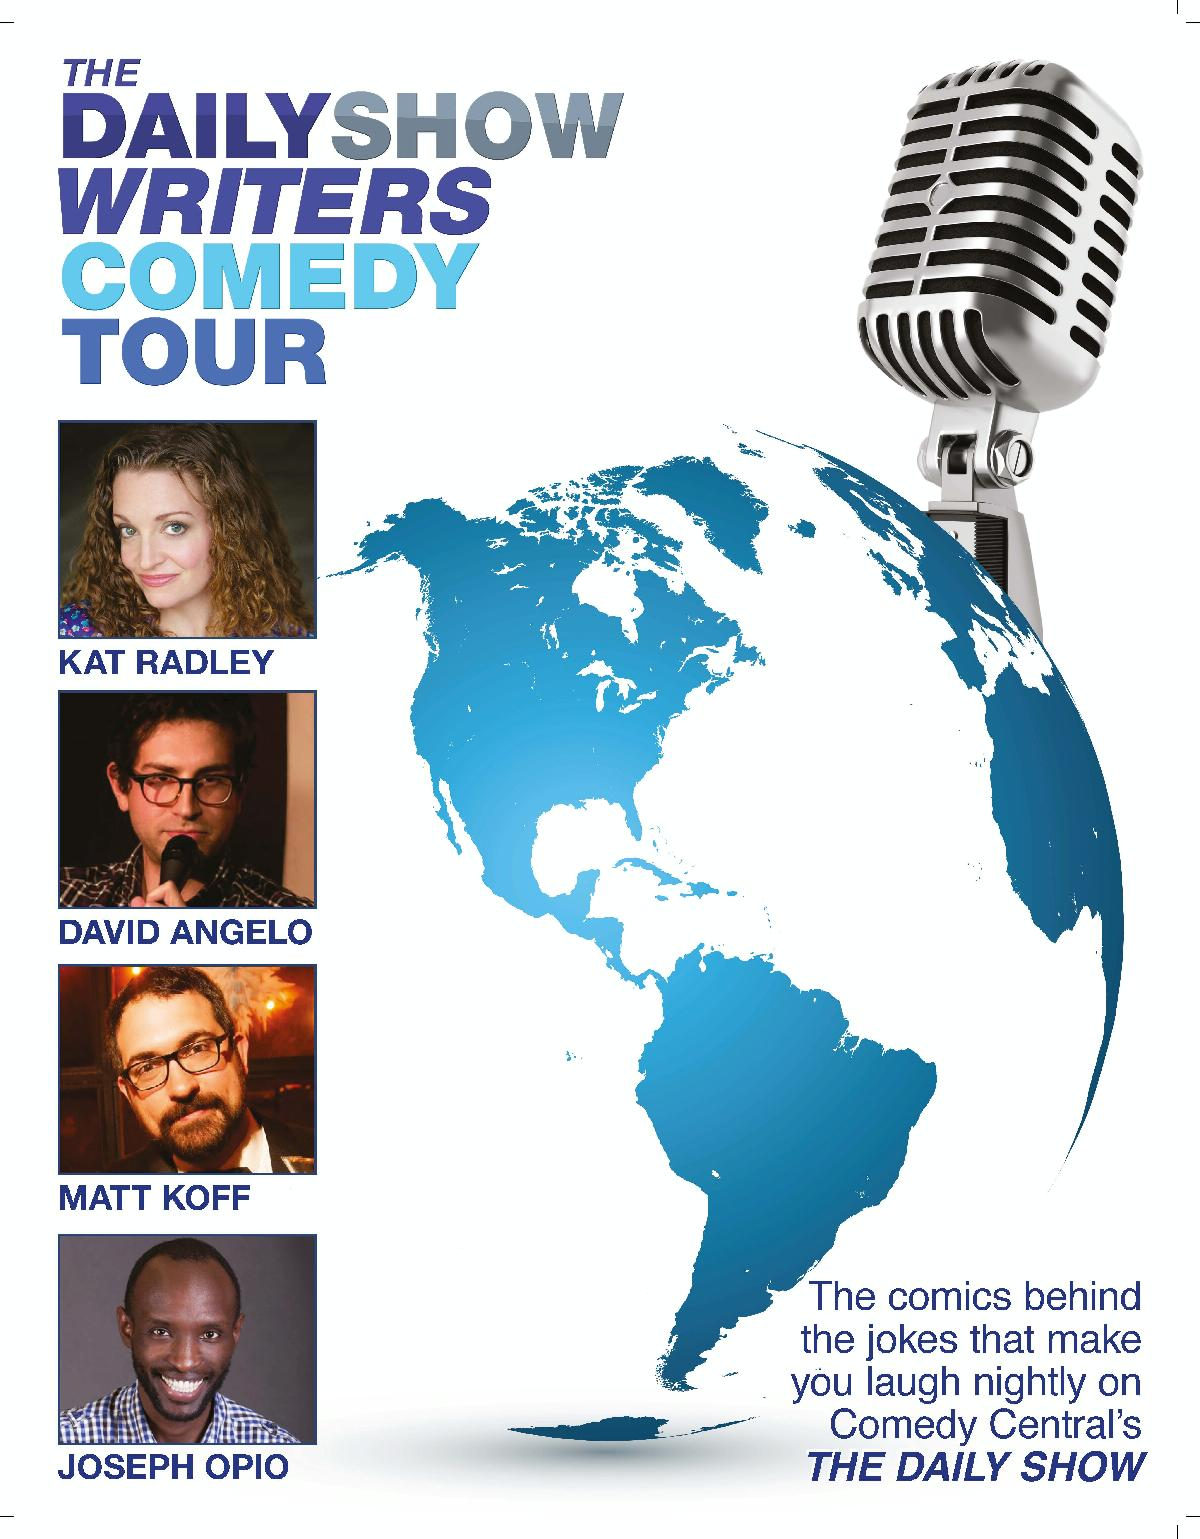 The Daily Show Episodes 2020.The Daily Show Writers Comedy Tour Harvester Performance